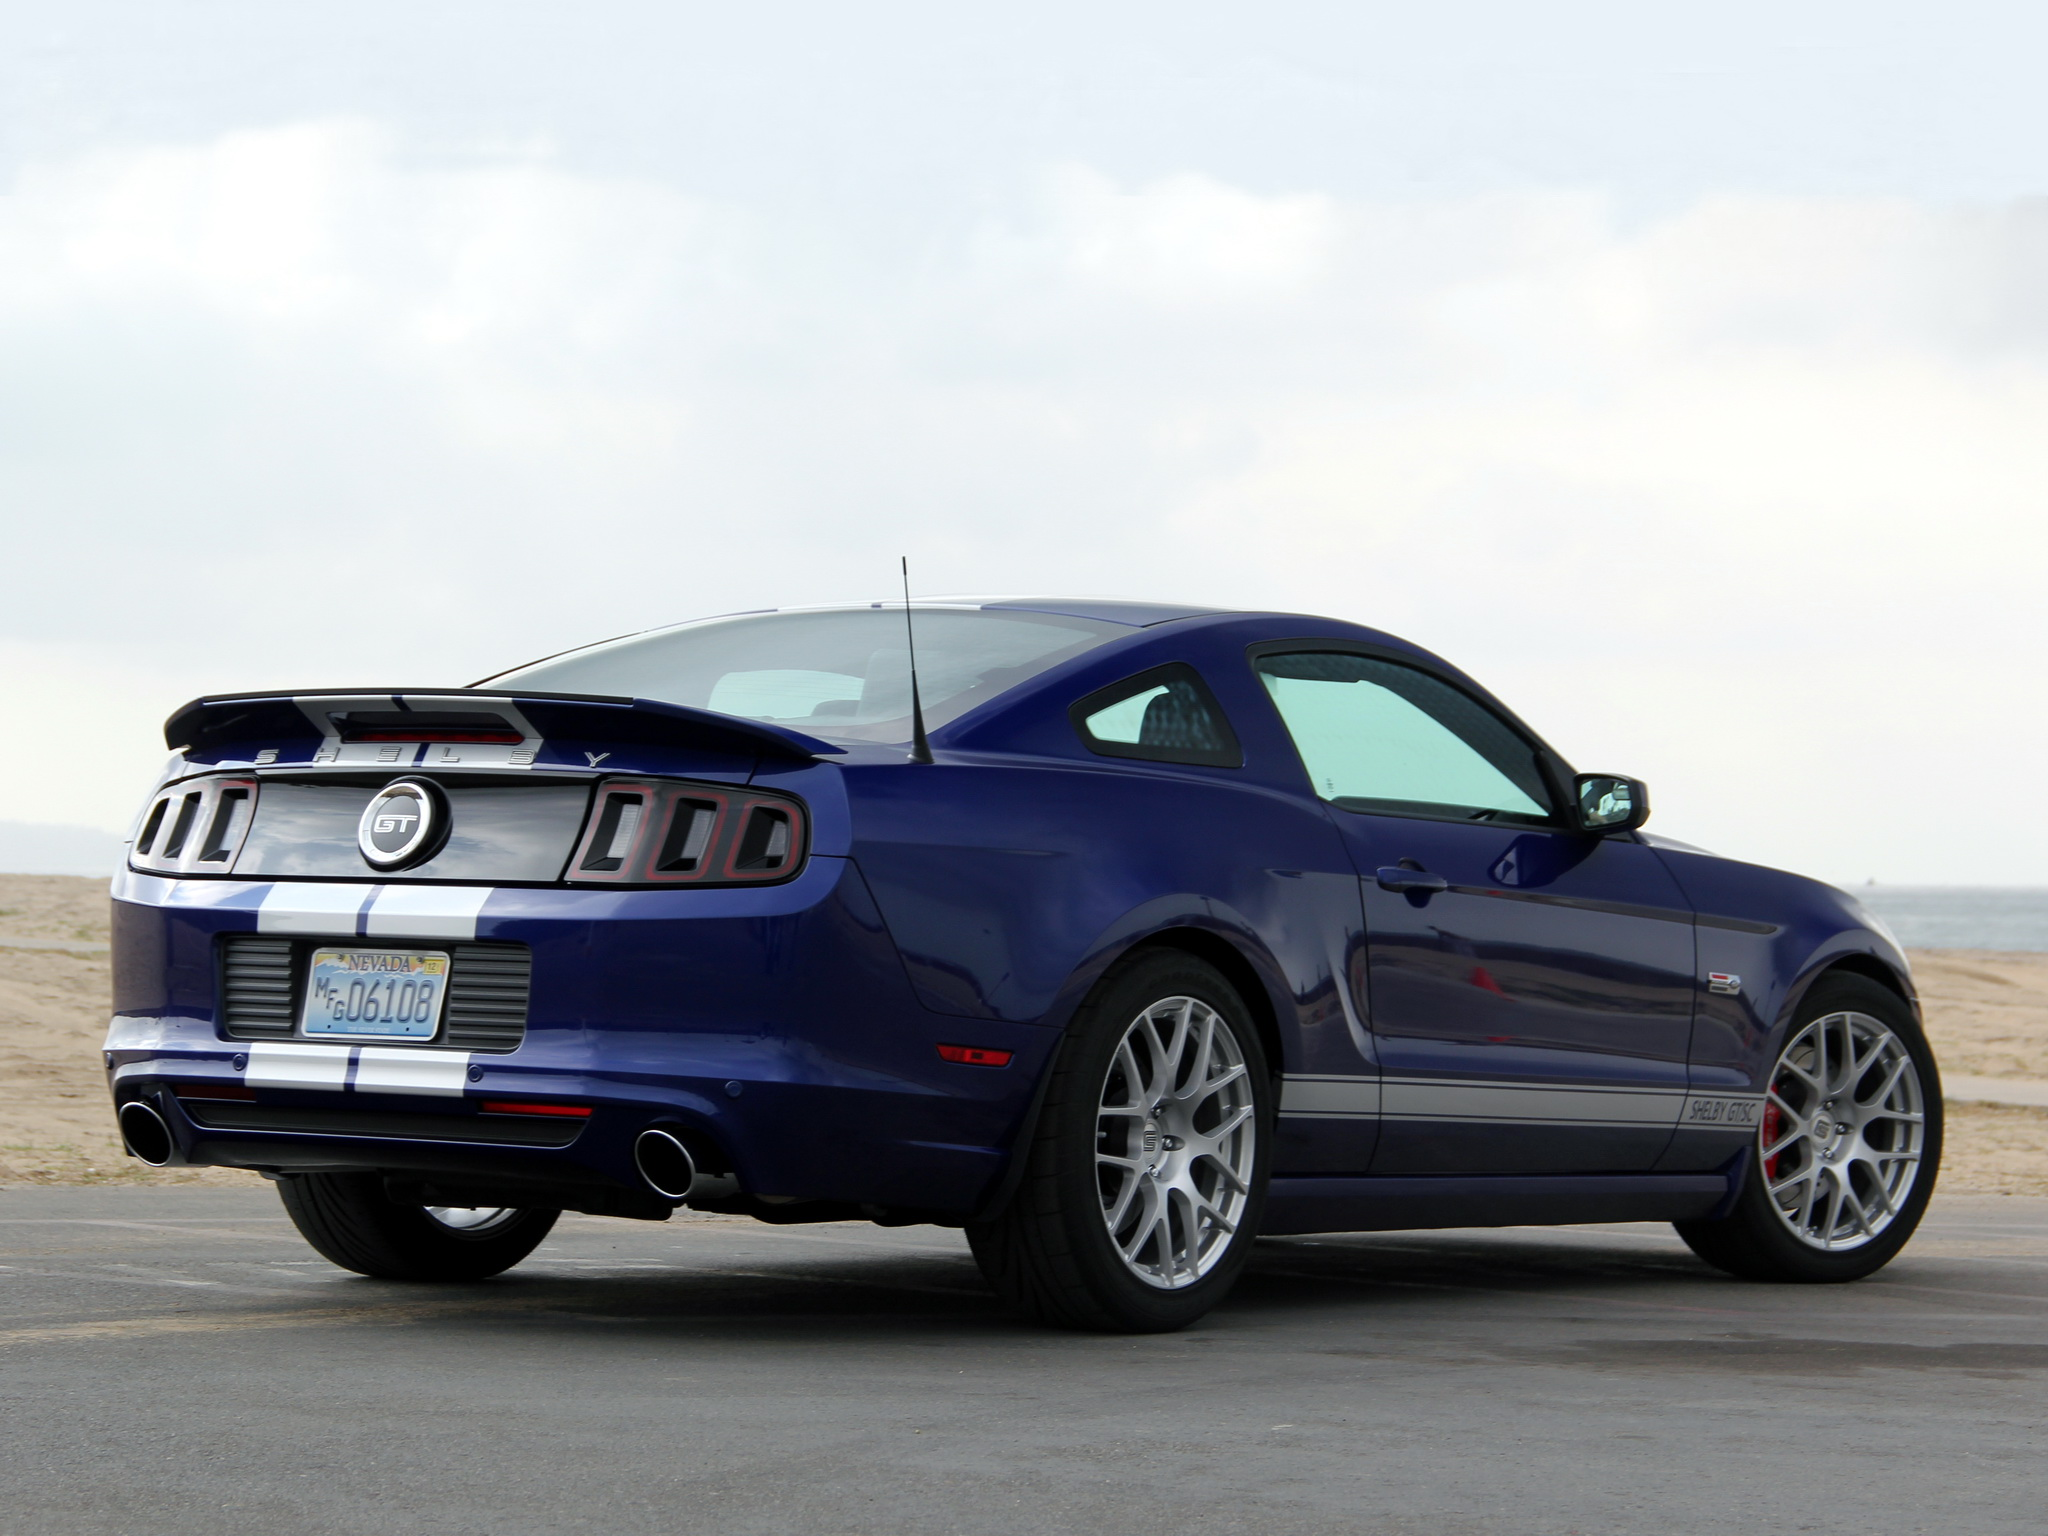 2014 shelby ford mustang gt sc muscle fs wallpaper 2048x1536 188013 wallpaperup. Black Bedroom Furniture Sets. Home Design Ideas